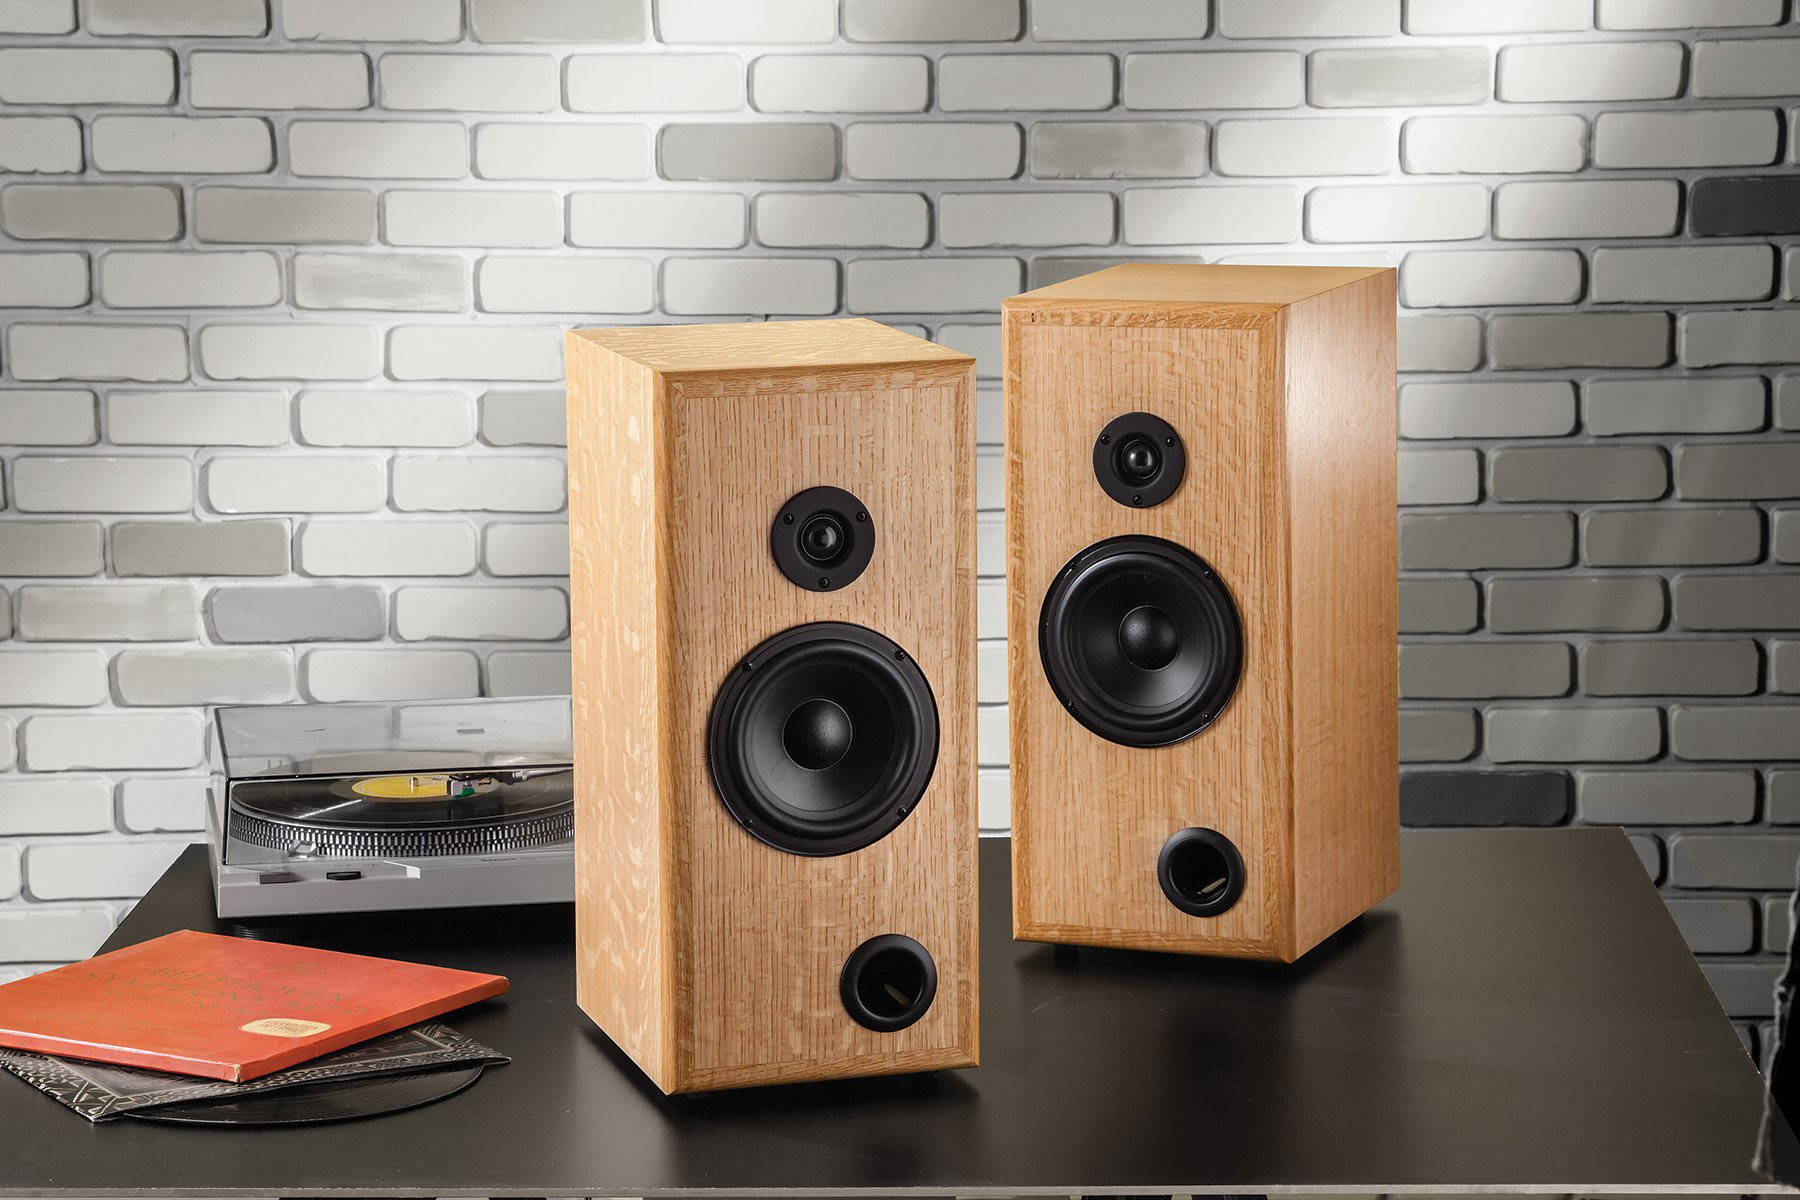 Diy Speaker  Rockler Introduces DIY Bookshelf Speaker Kits